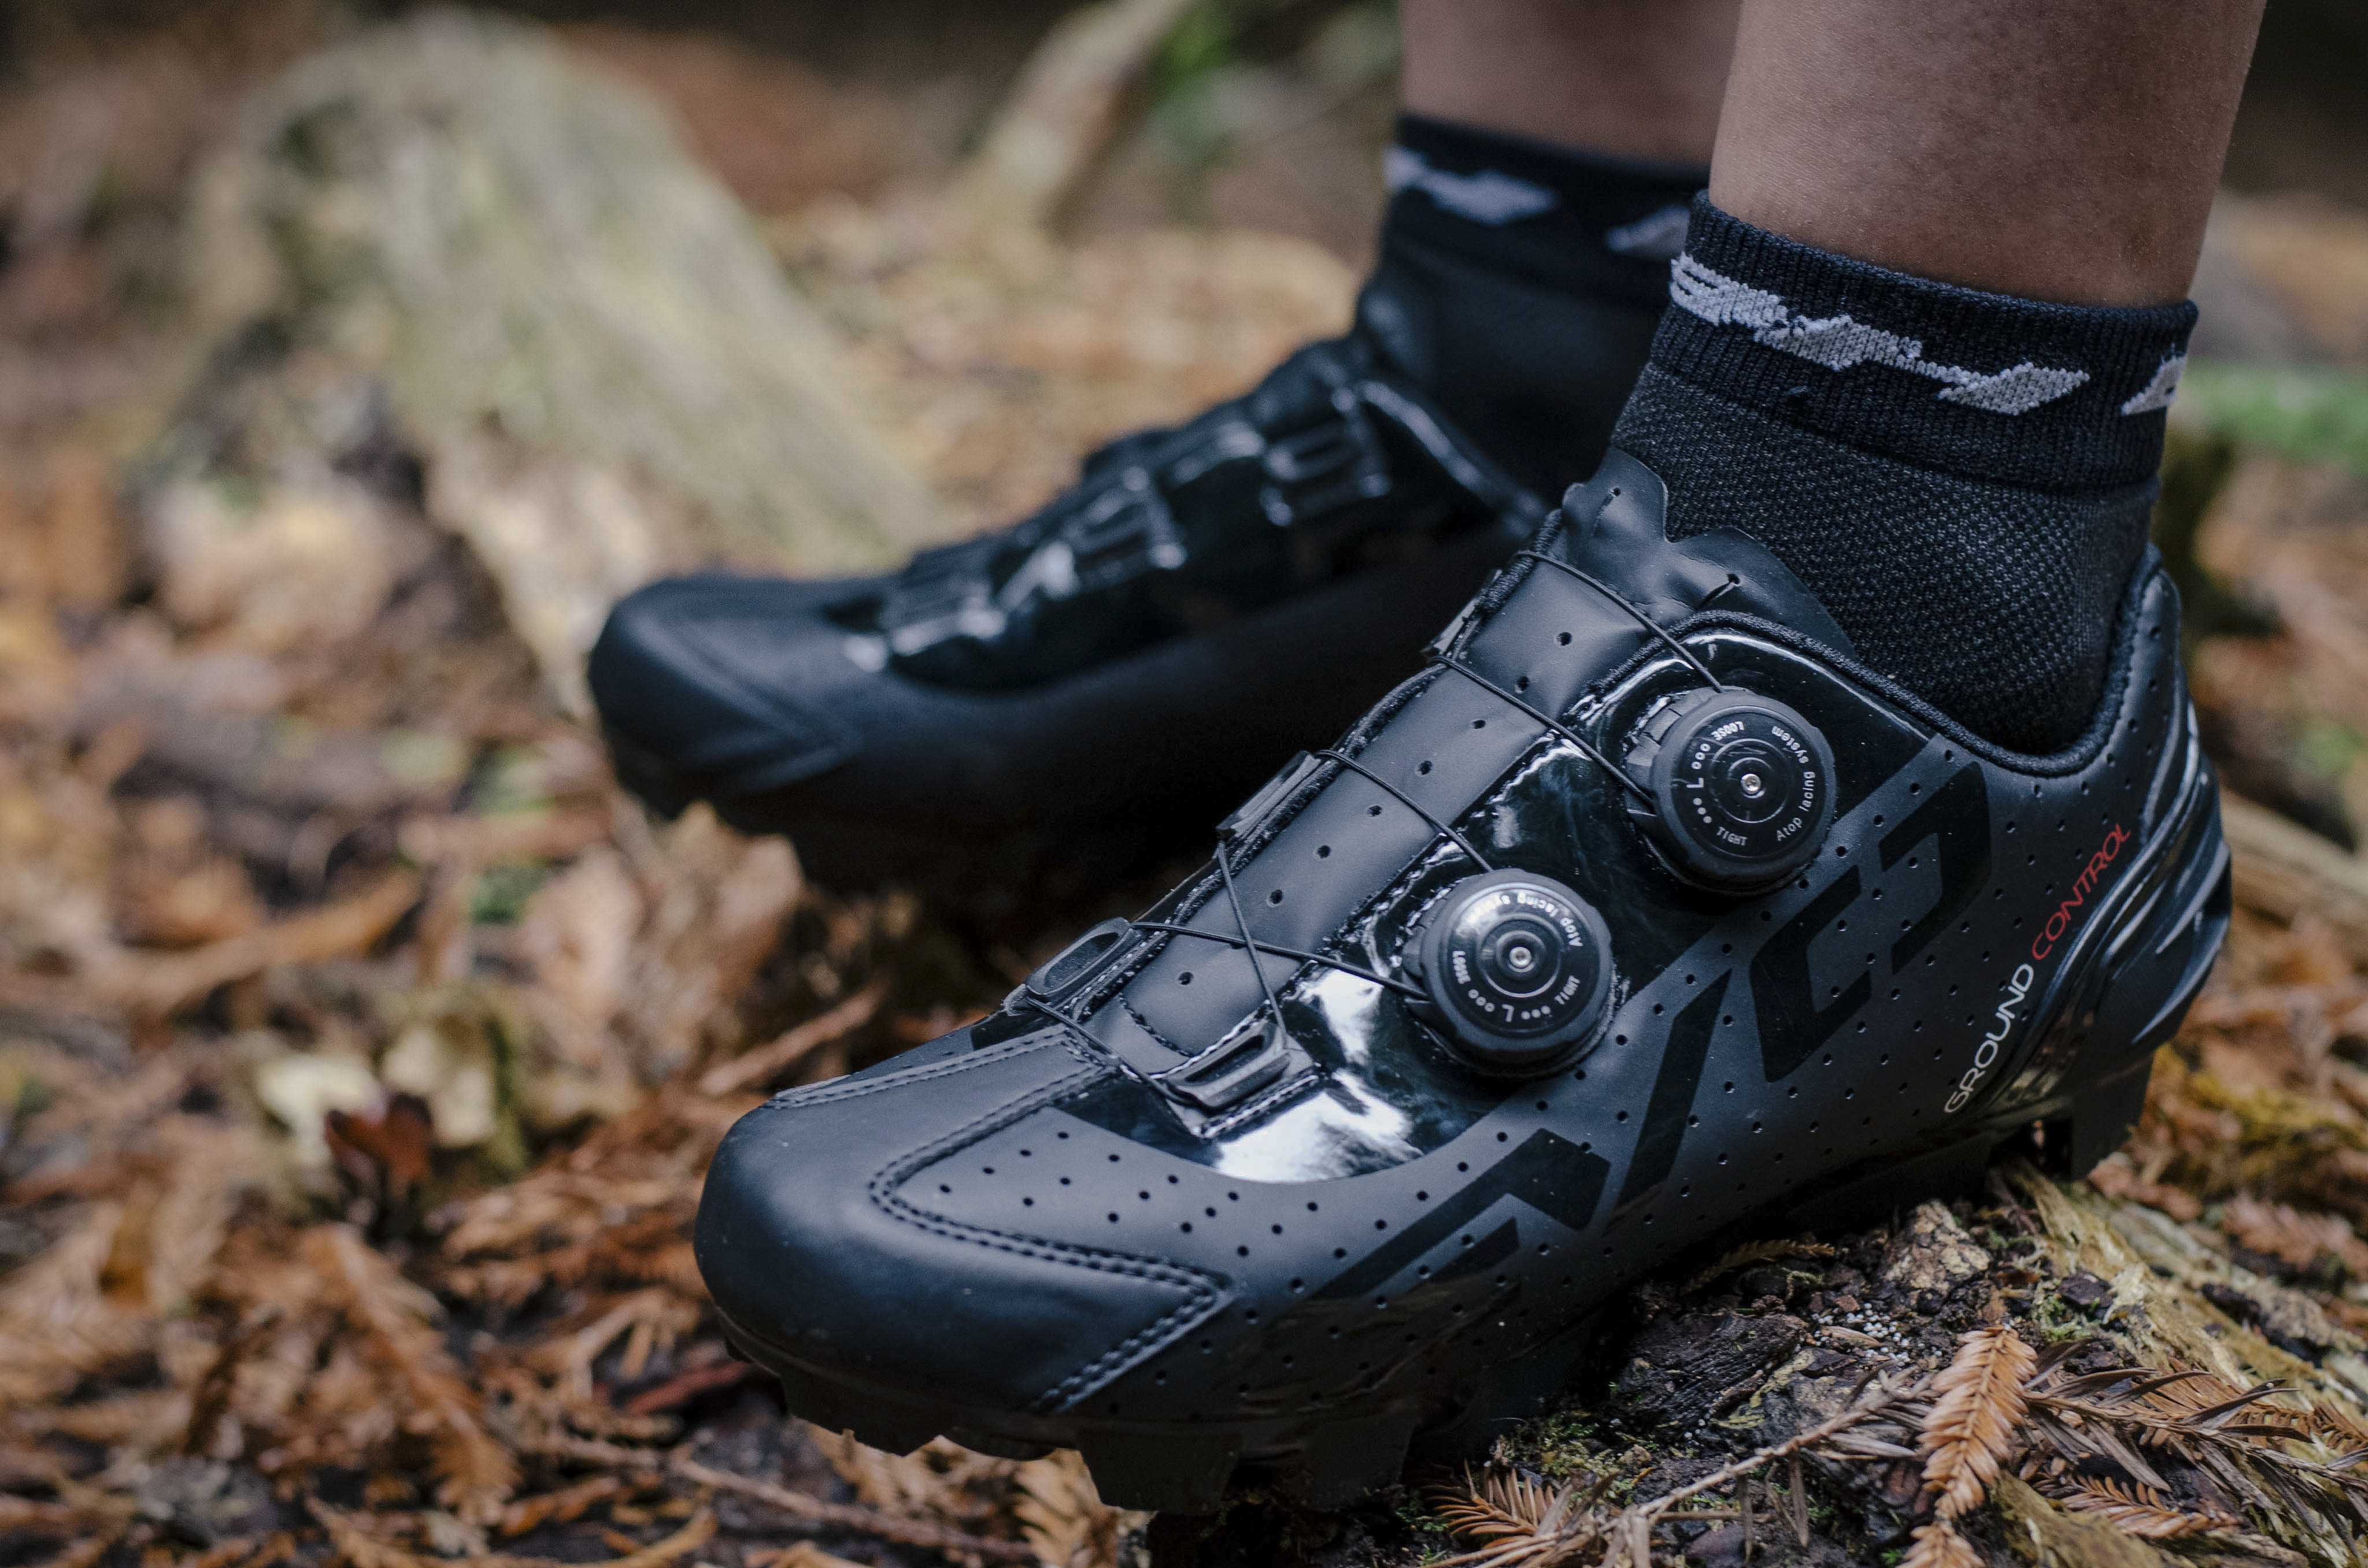 Bh Steps Out With New Evo S Lite Amp Lite Shoes For Both